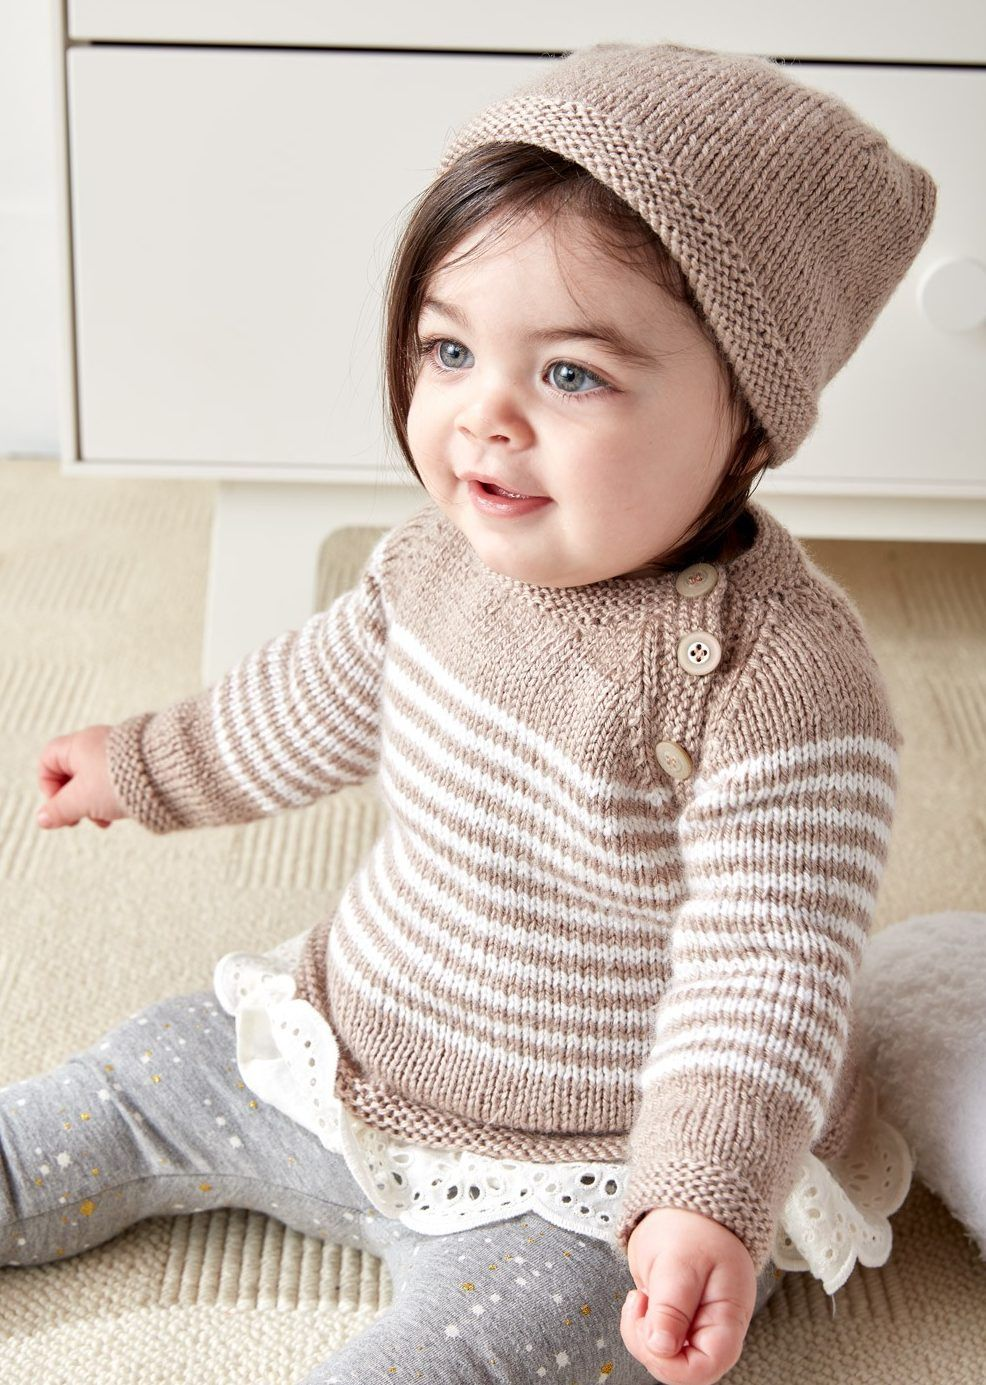 Free knitting pattern for easy wee stripes baby sweater and hat free knitting pattern for easy wee stripes baby sweater and hat rated easy by bernat bankloansurffo Image collections